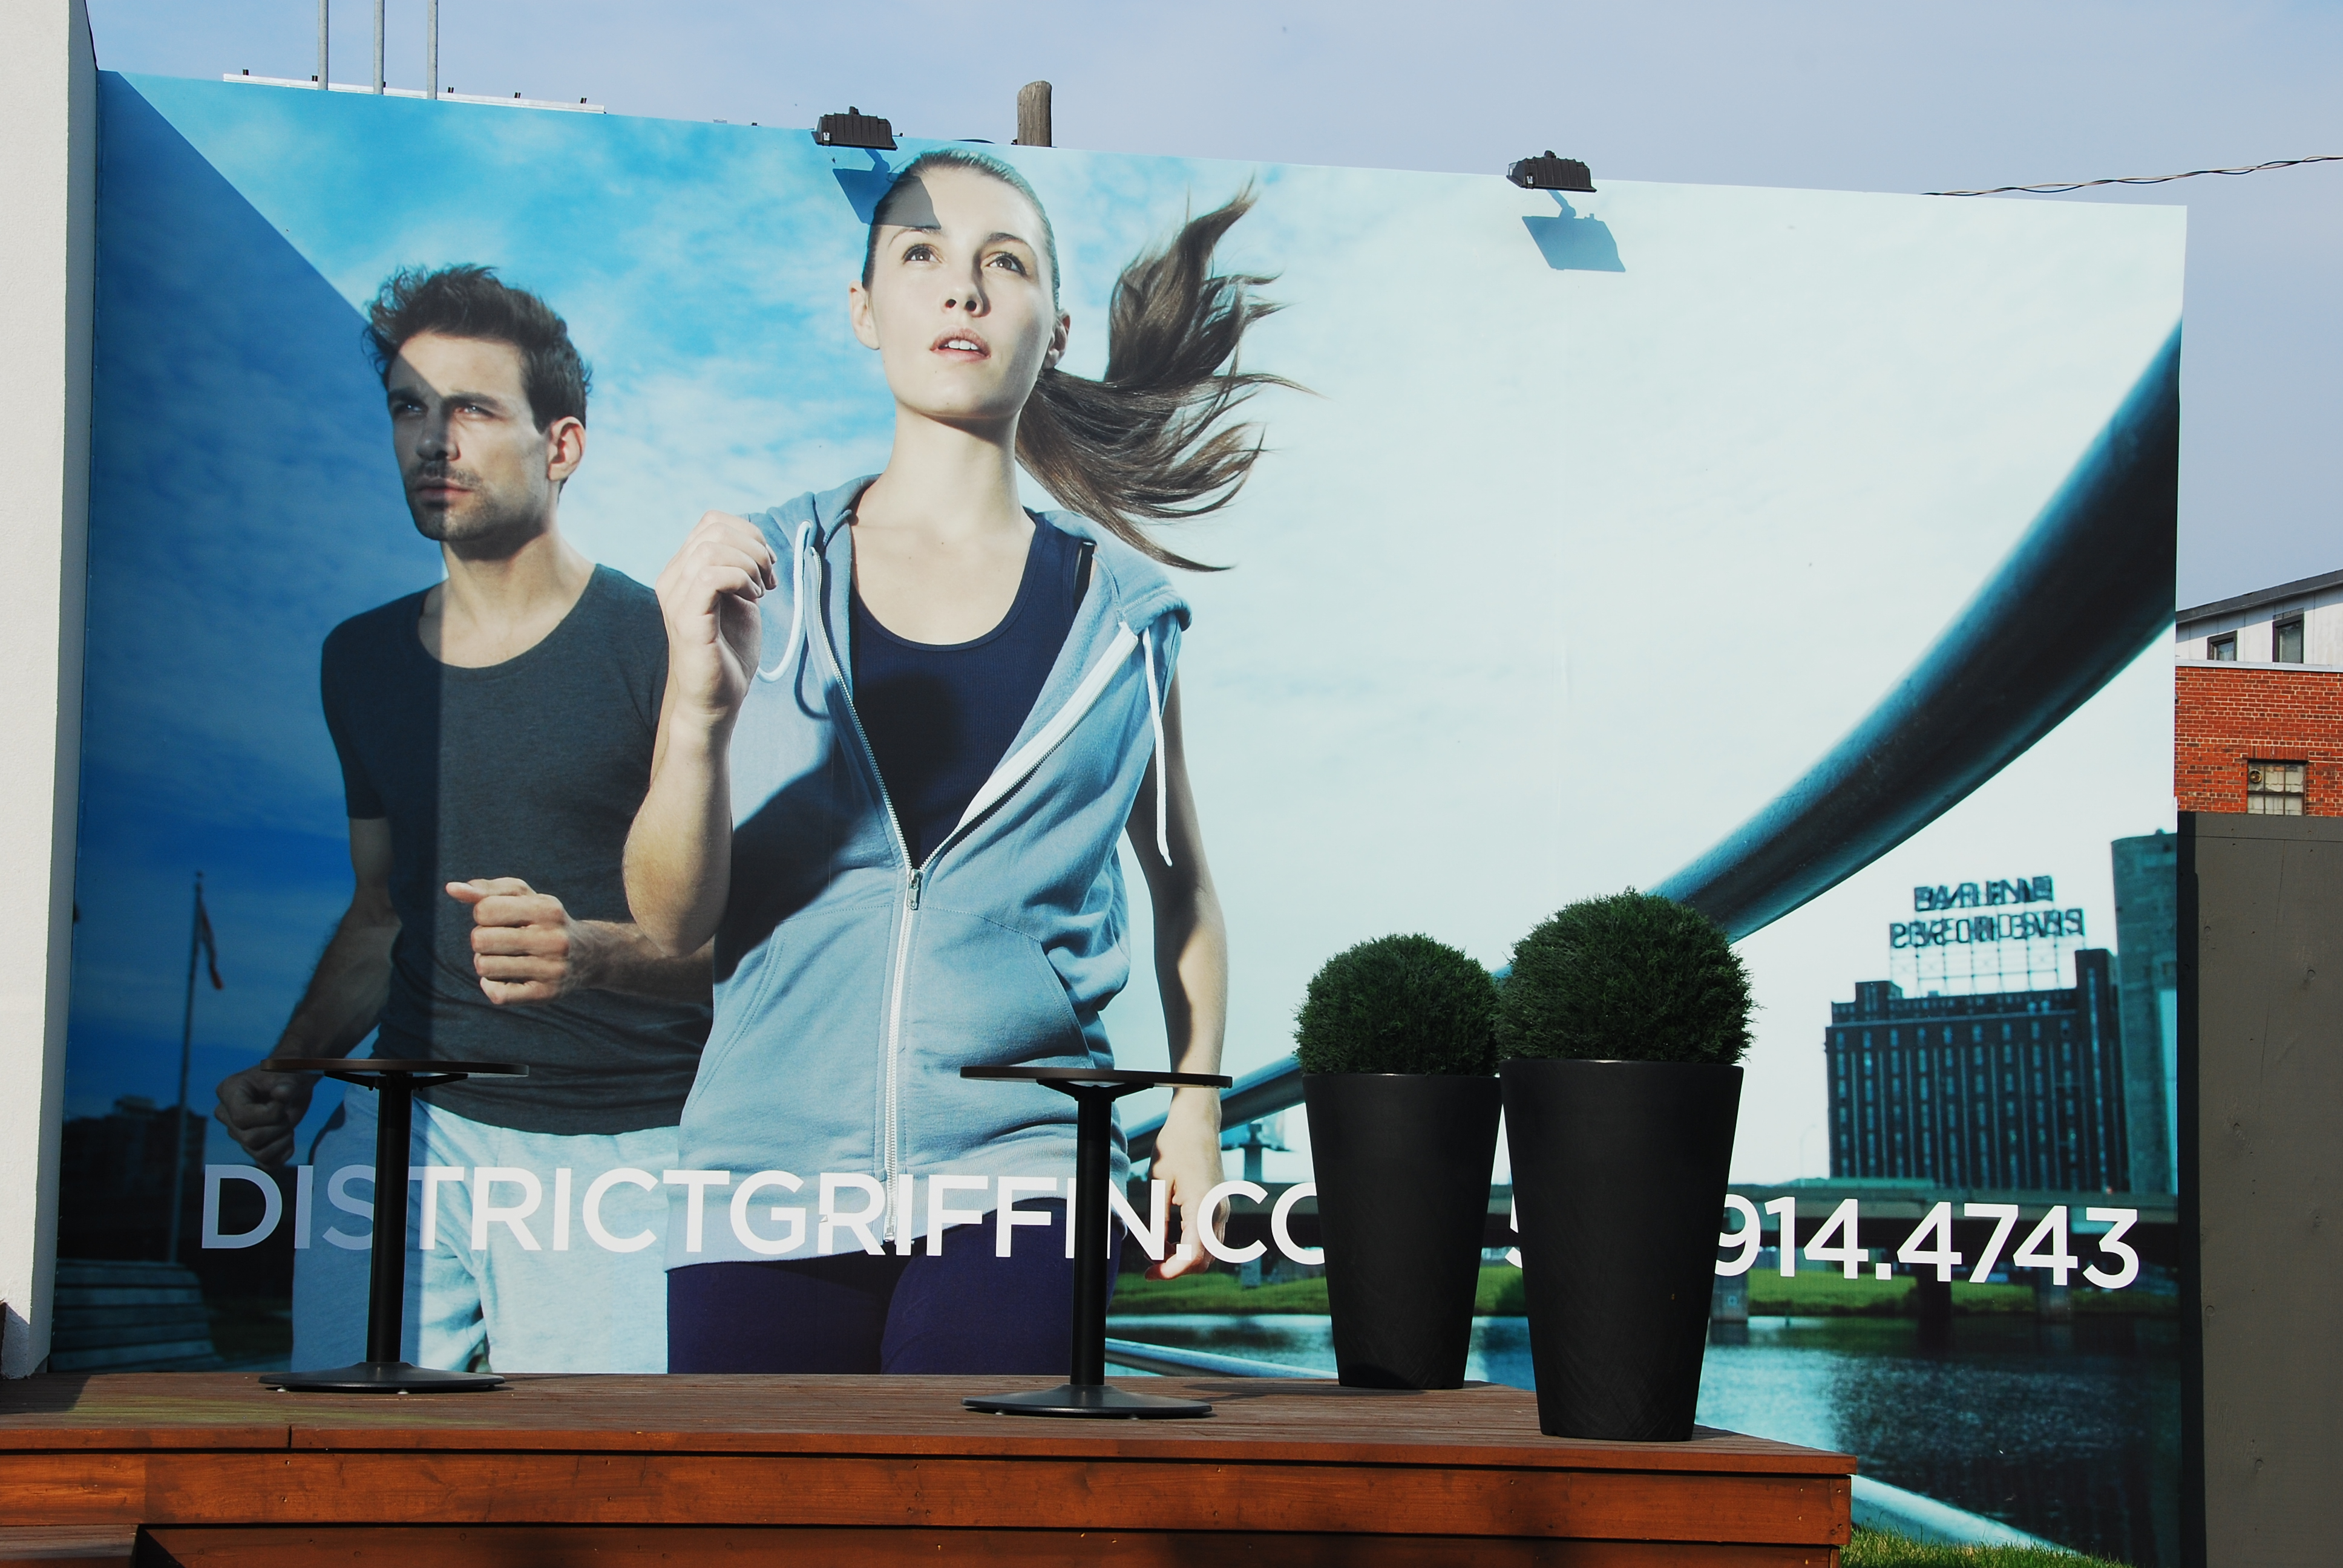 "[Image 8 - Billboard advertising ""District Griffin"" condominiums, 2011. Photo: S. Janssen]"